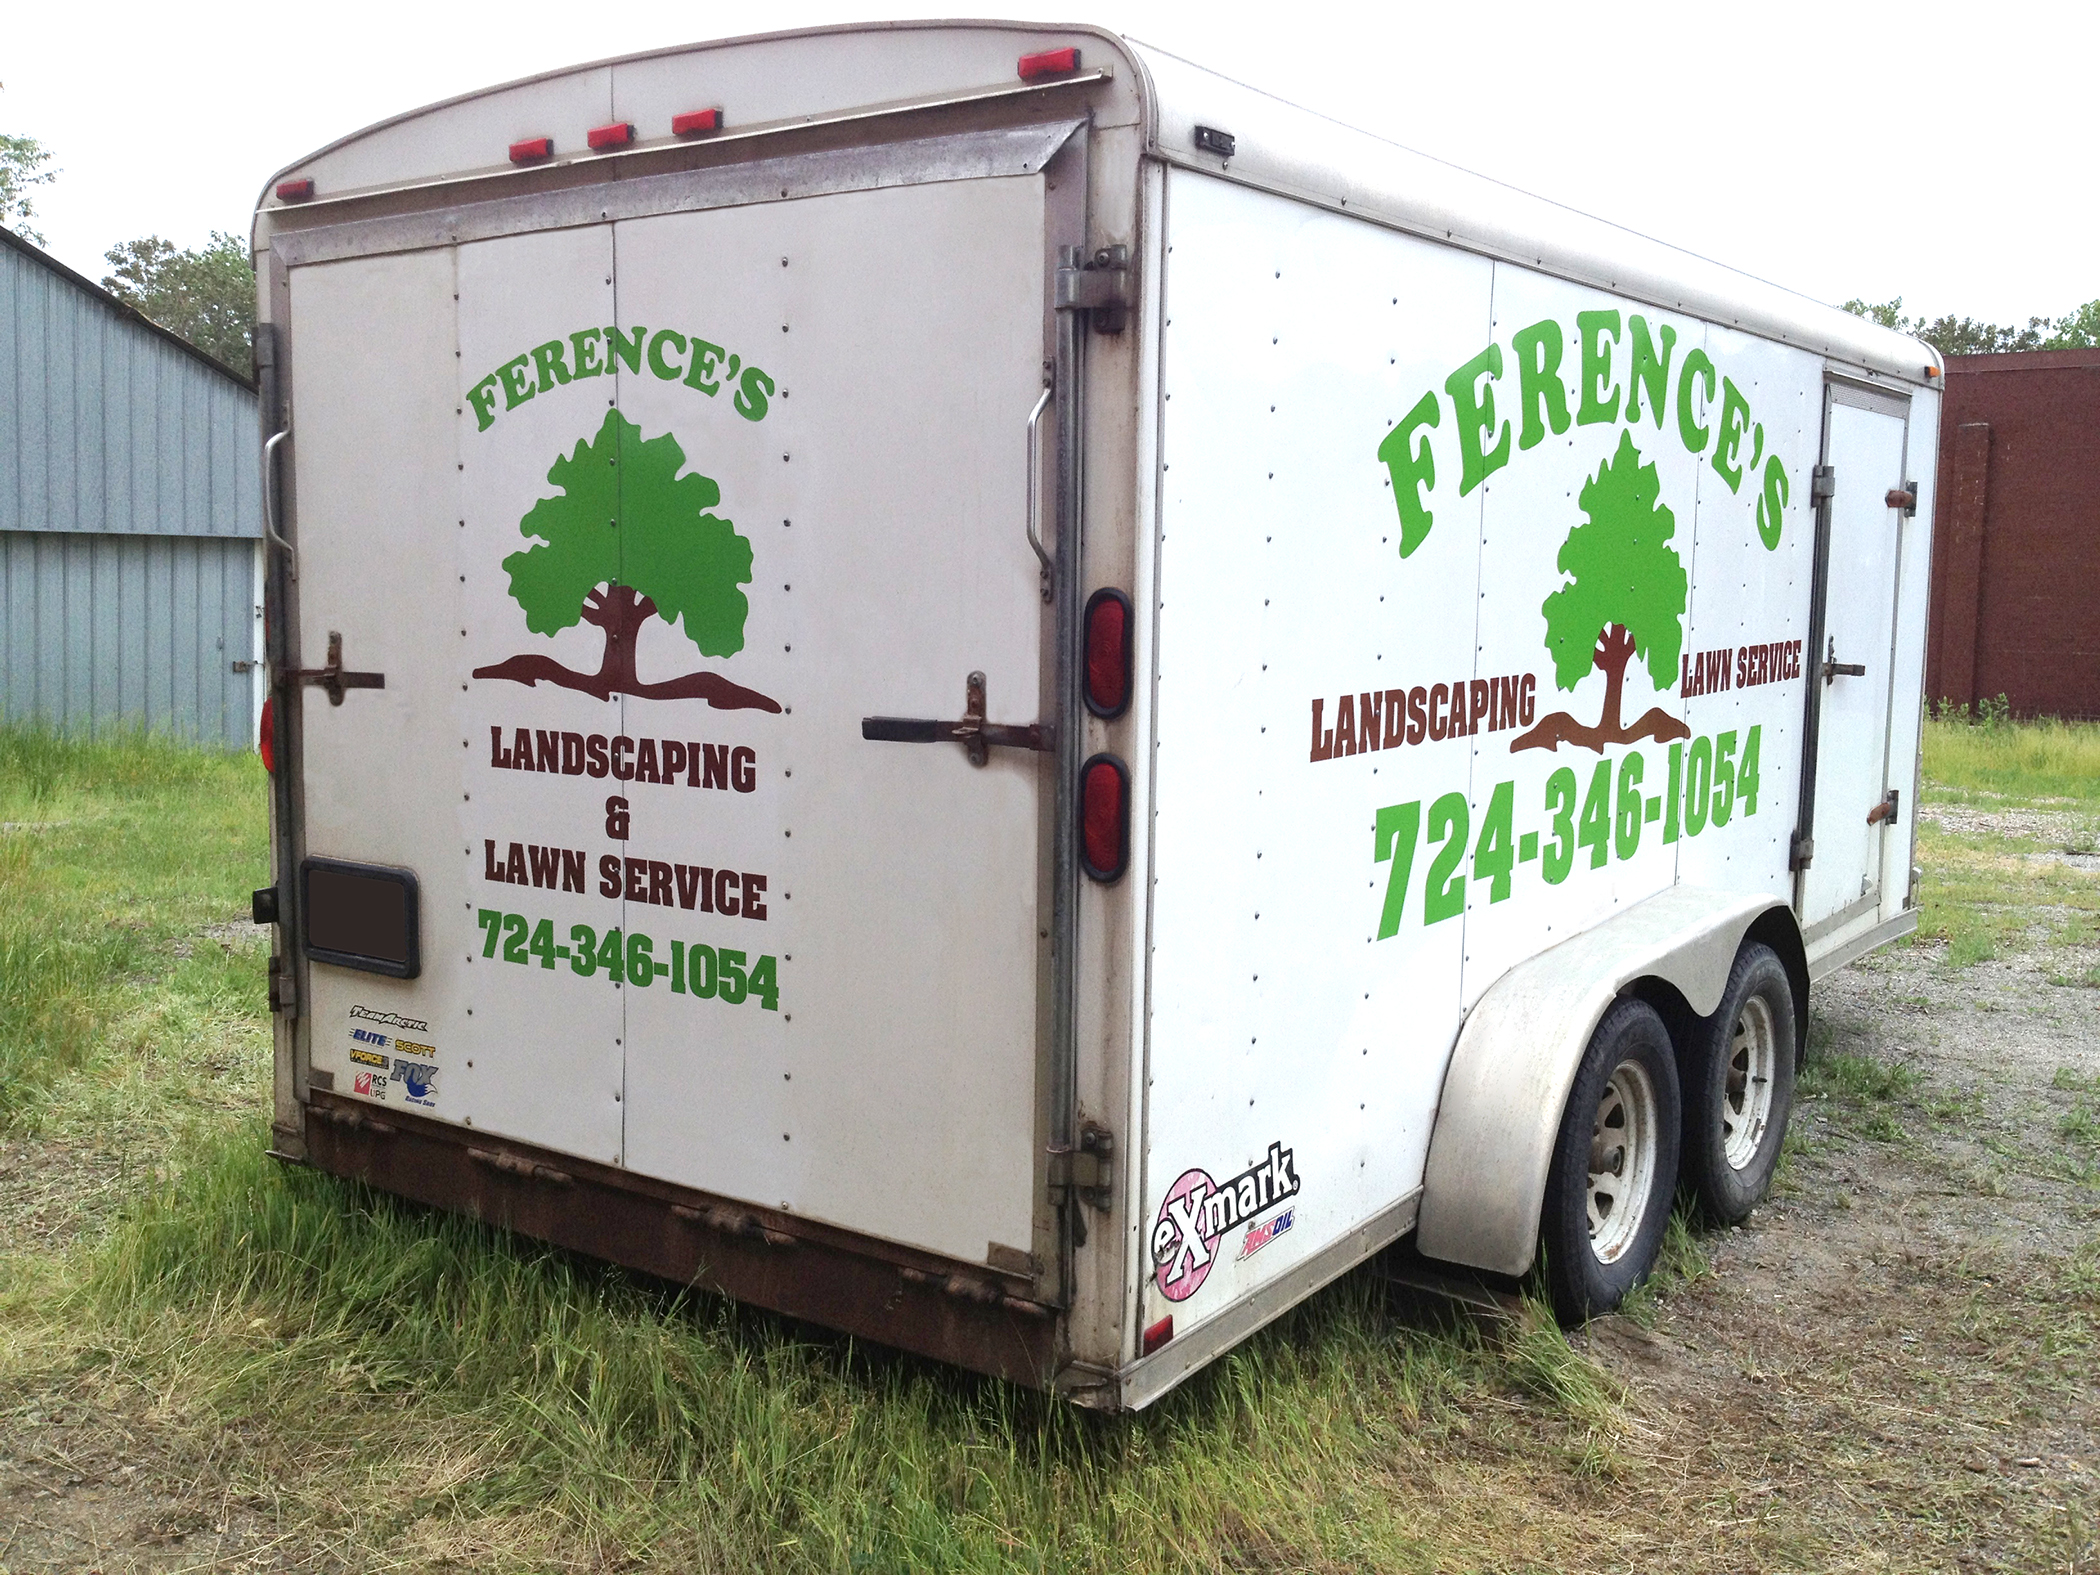 Client: Ference's Landscaping